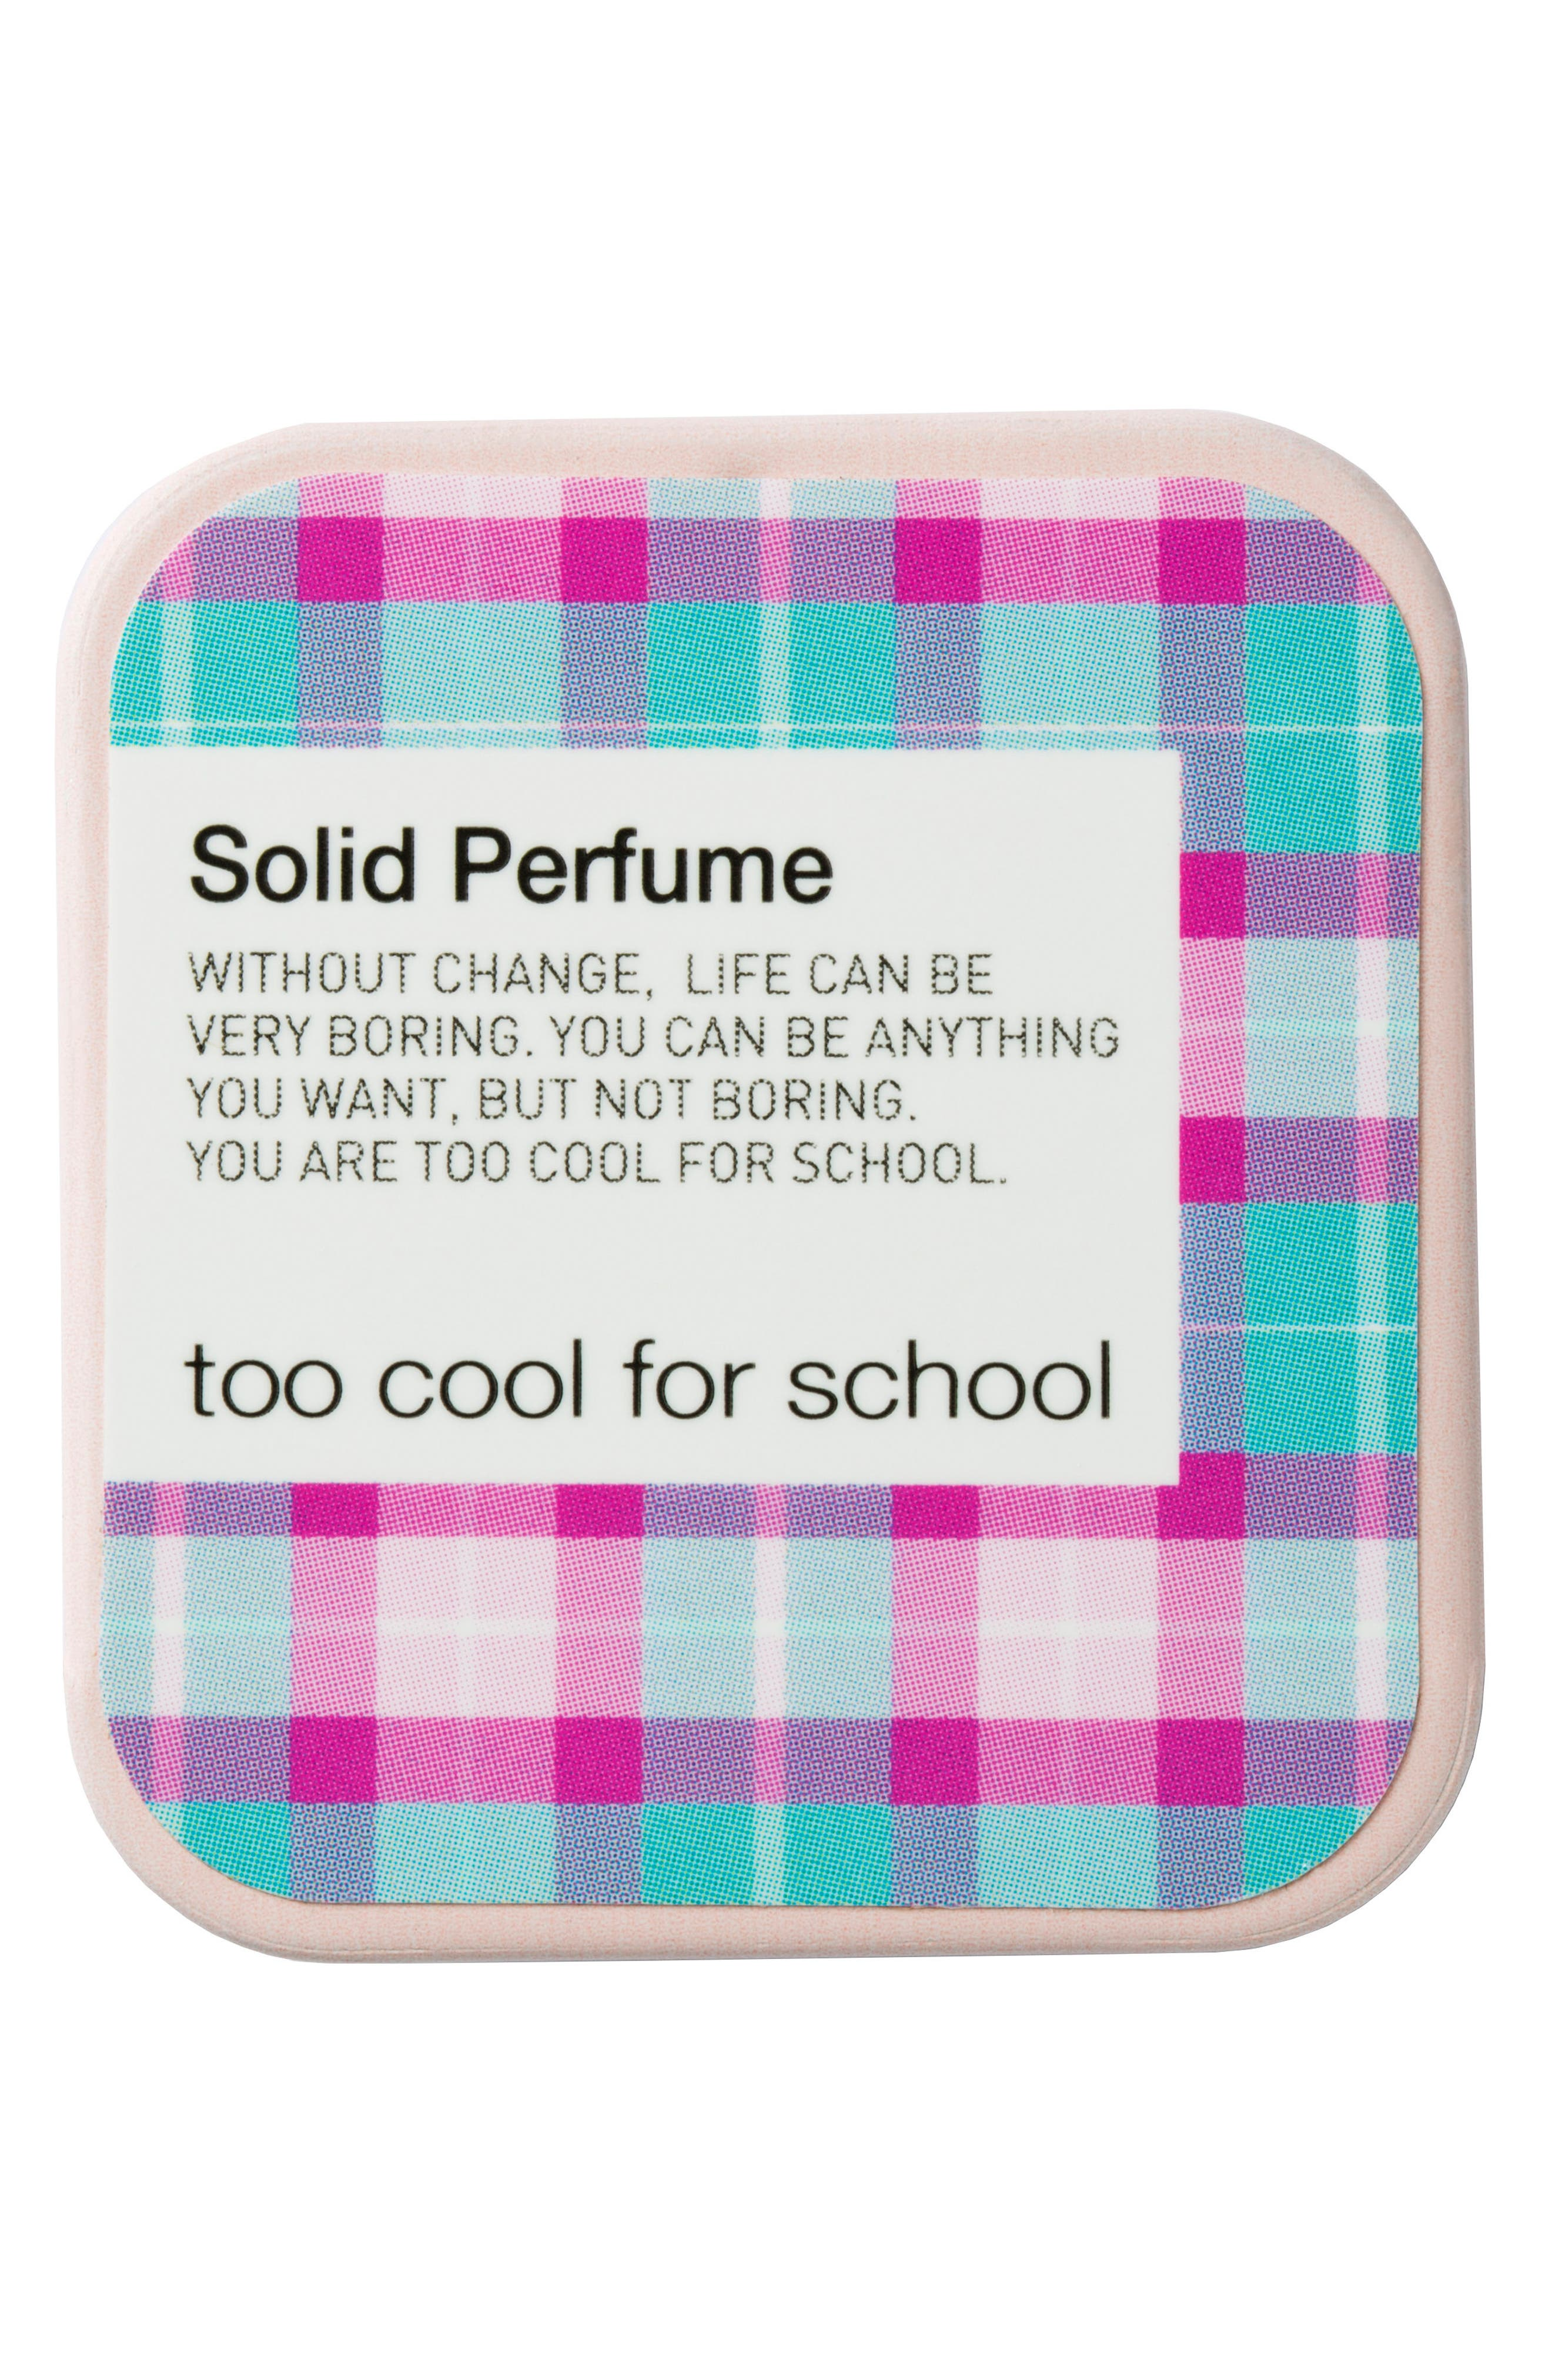 Jelly Blusher & Solid Perfume Trio,                             Alternate thumbnail 11, color,                             None